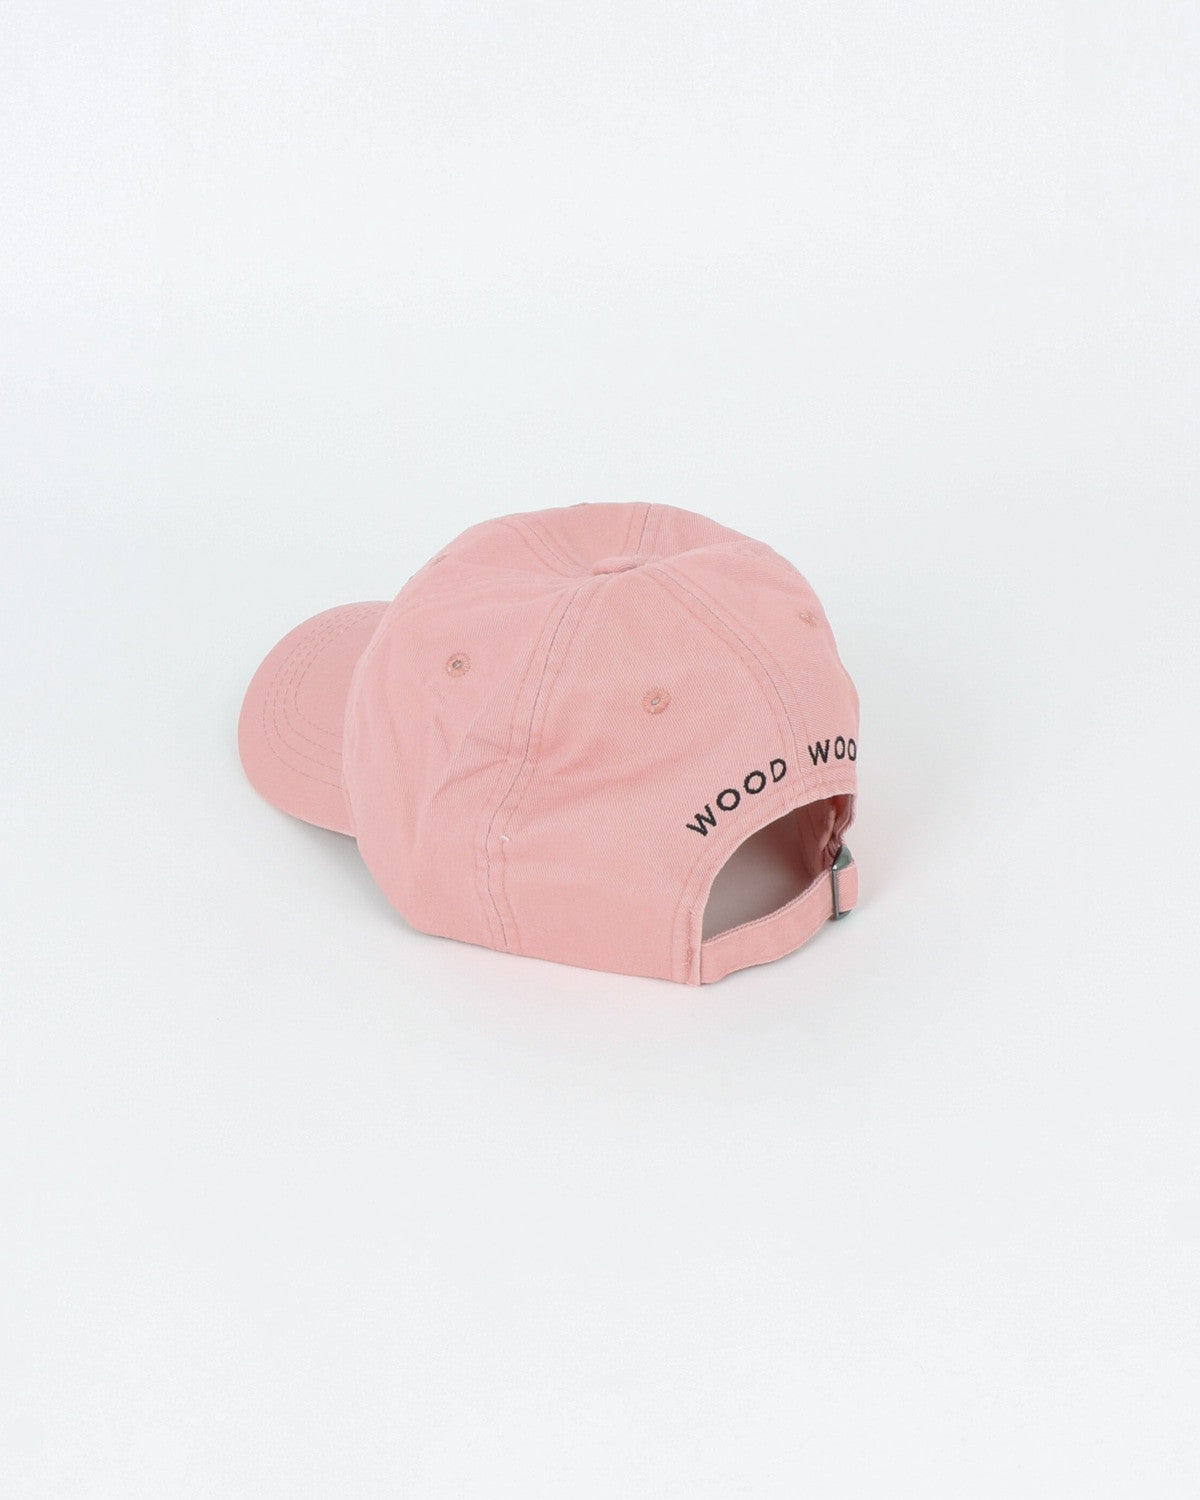 wood wood_low profile cap_teenage poetry_peach beige_view_2_2